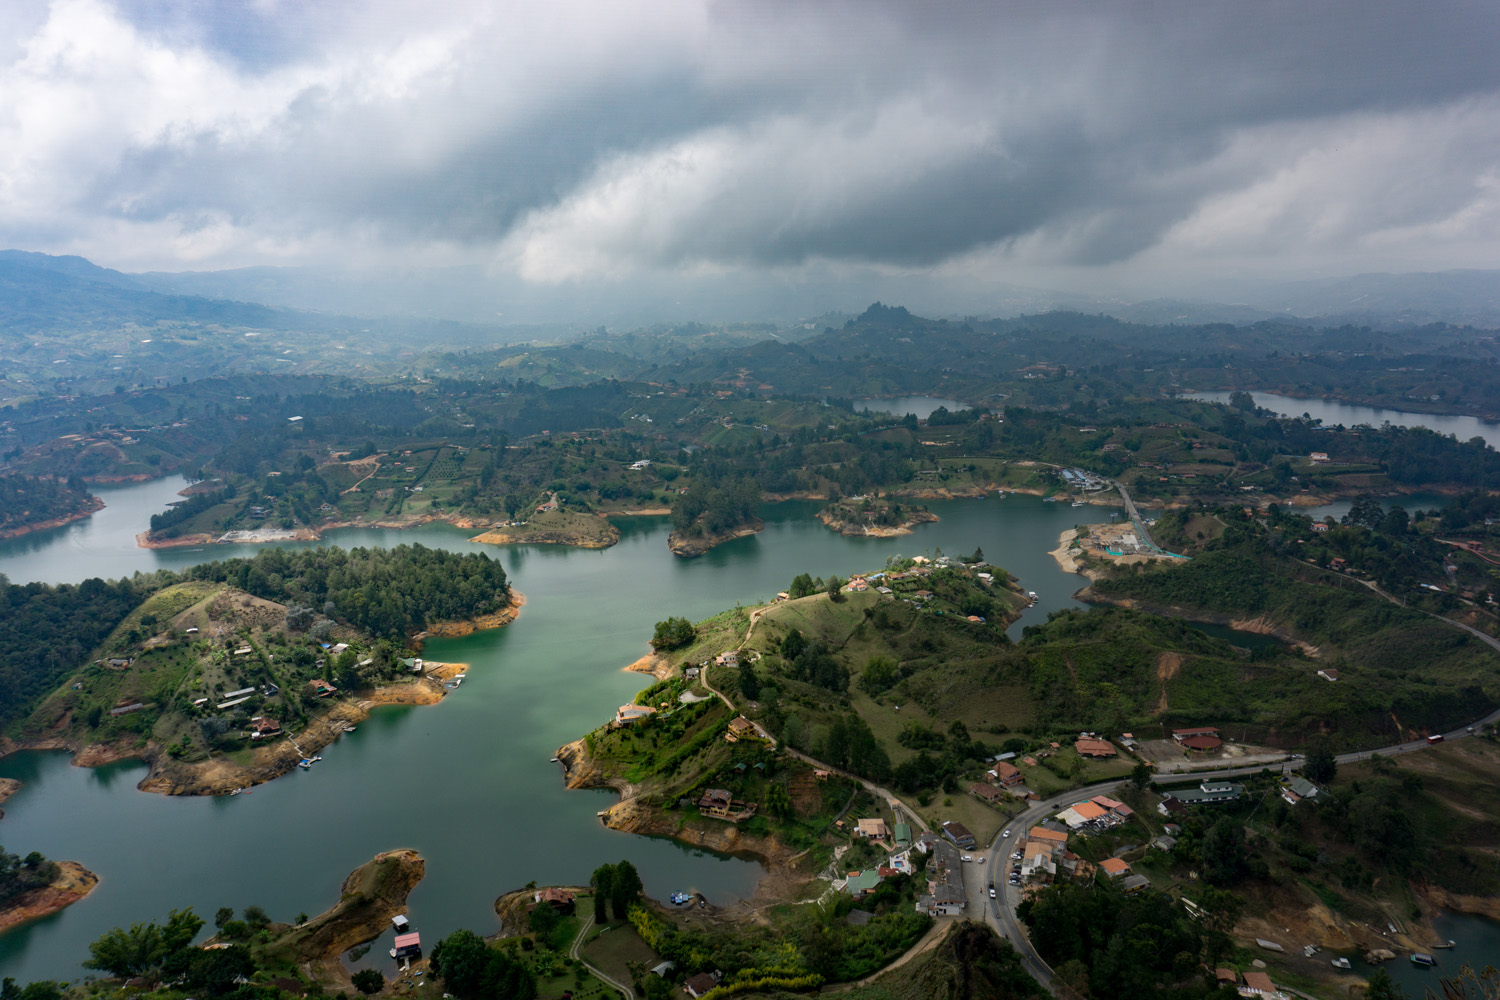 Top of the Rock – La Piedra in Guatapé.